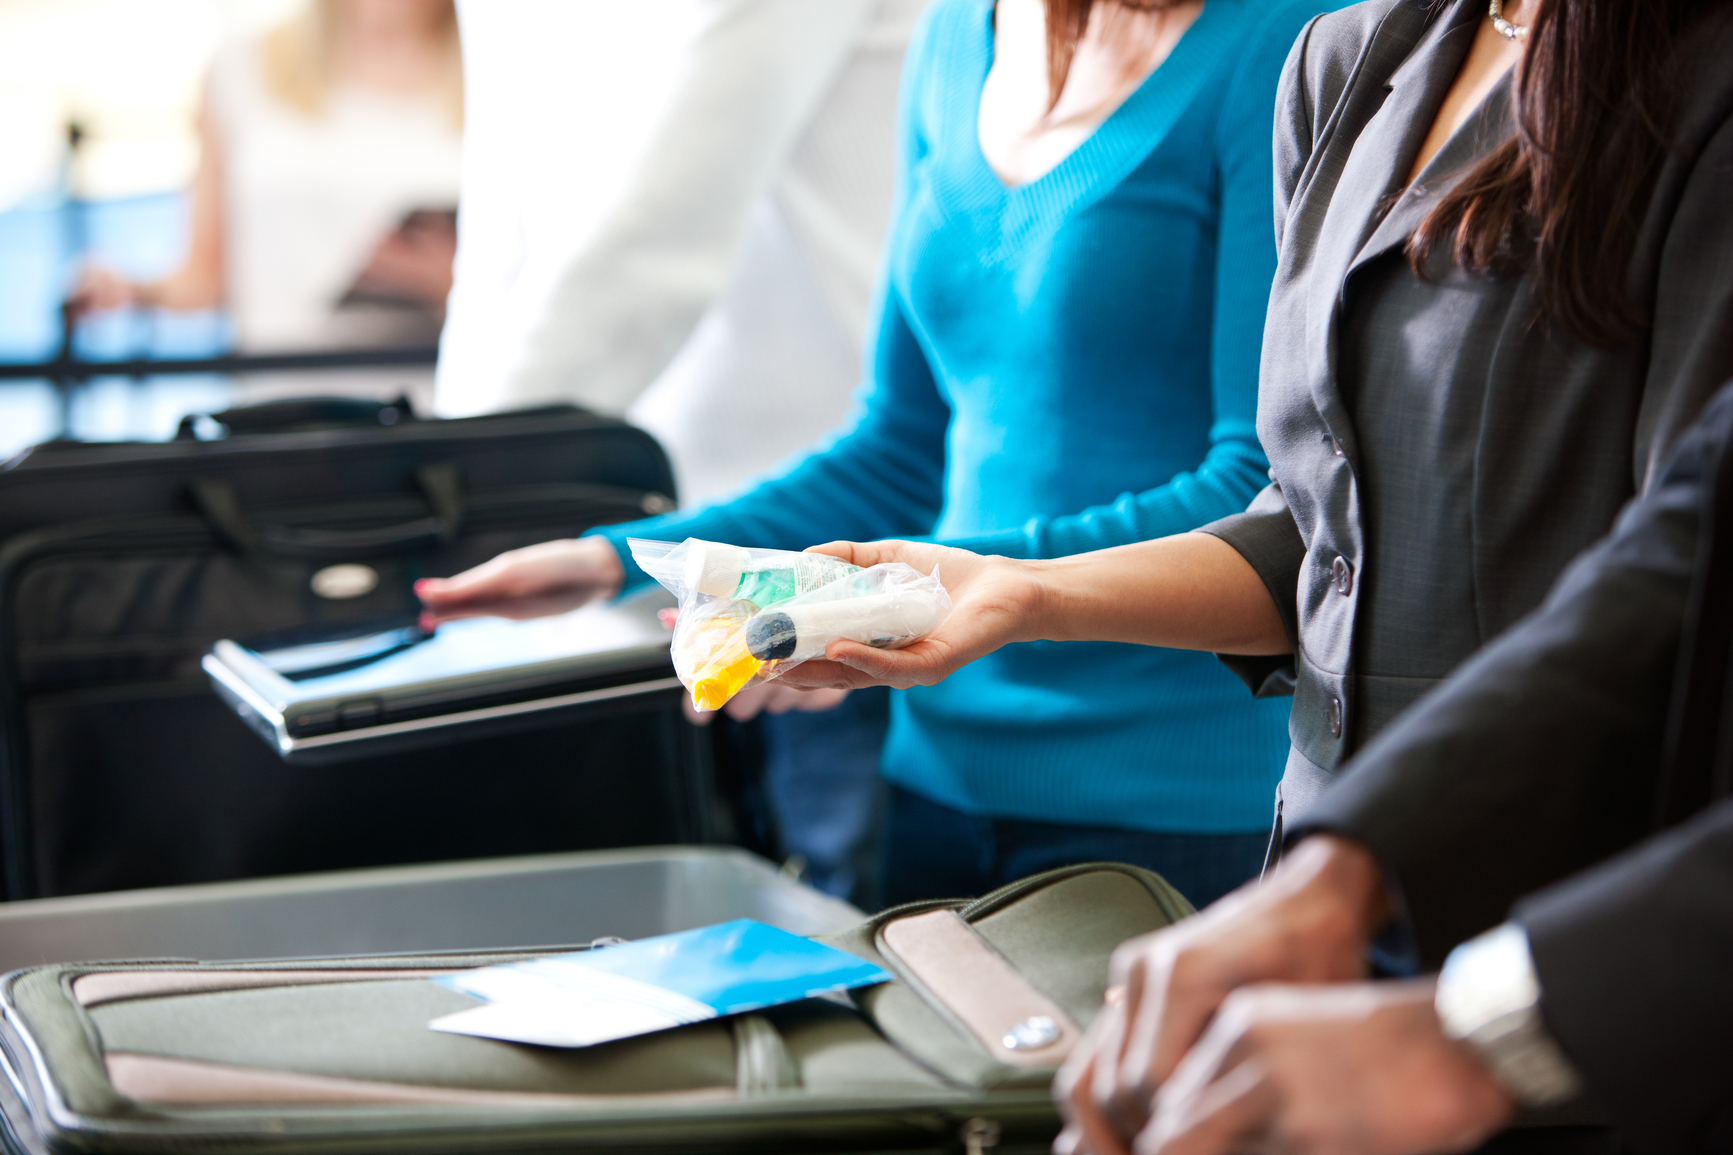 Airport: Removing Plastic Bag of Toiletry Items